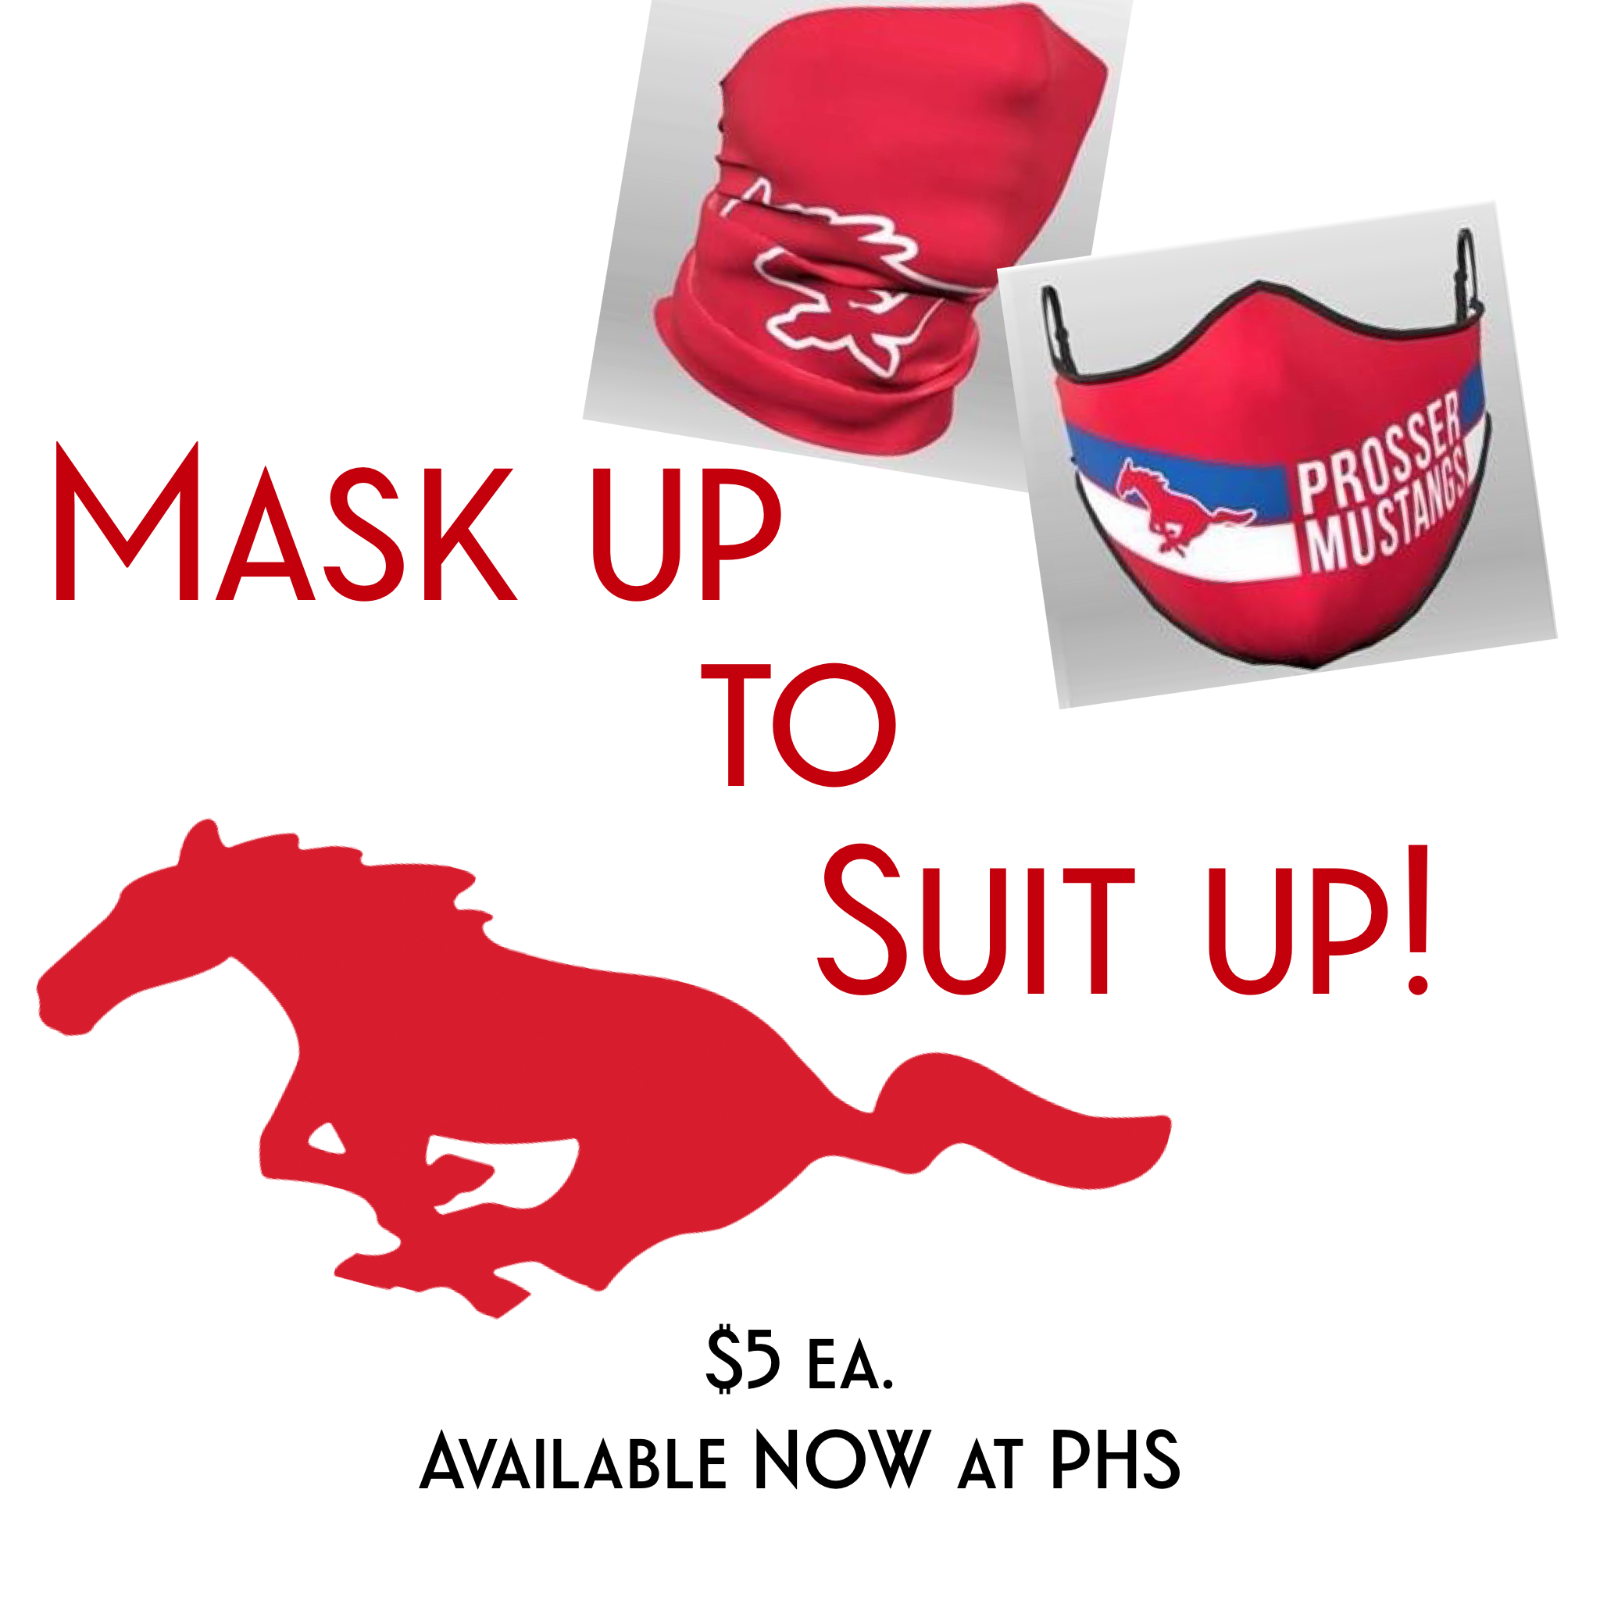 Mask Up to Suit Up!